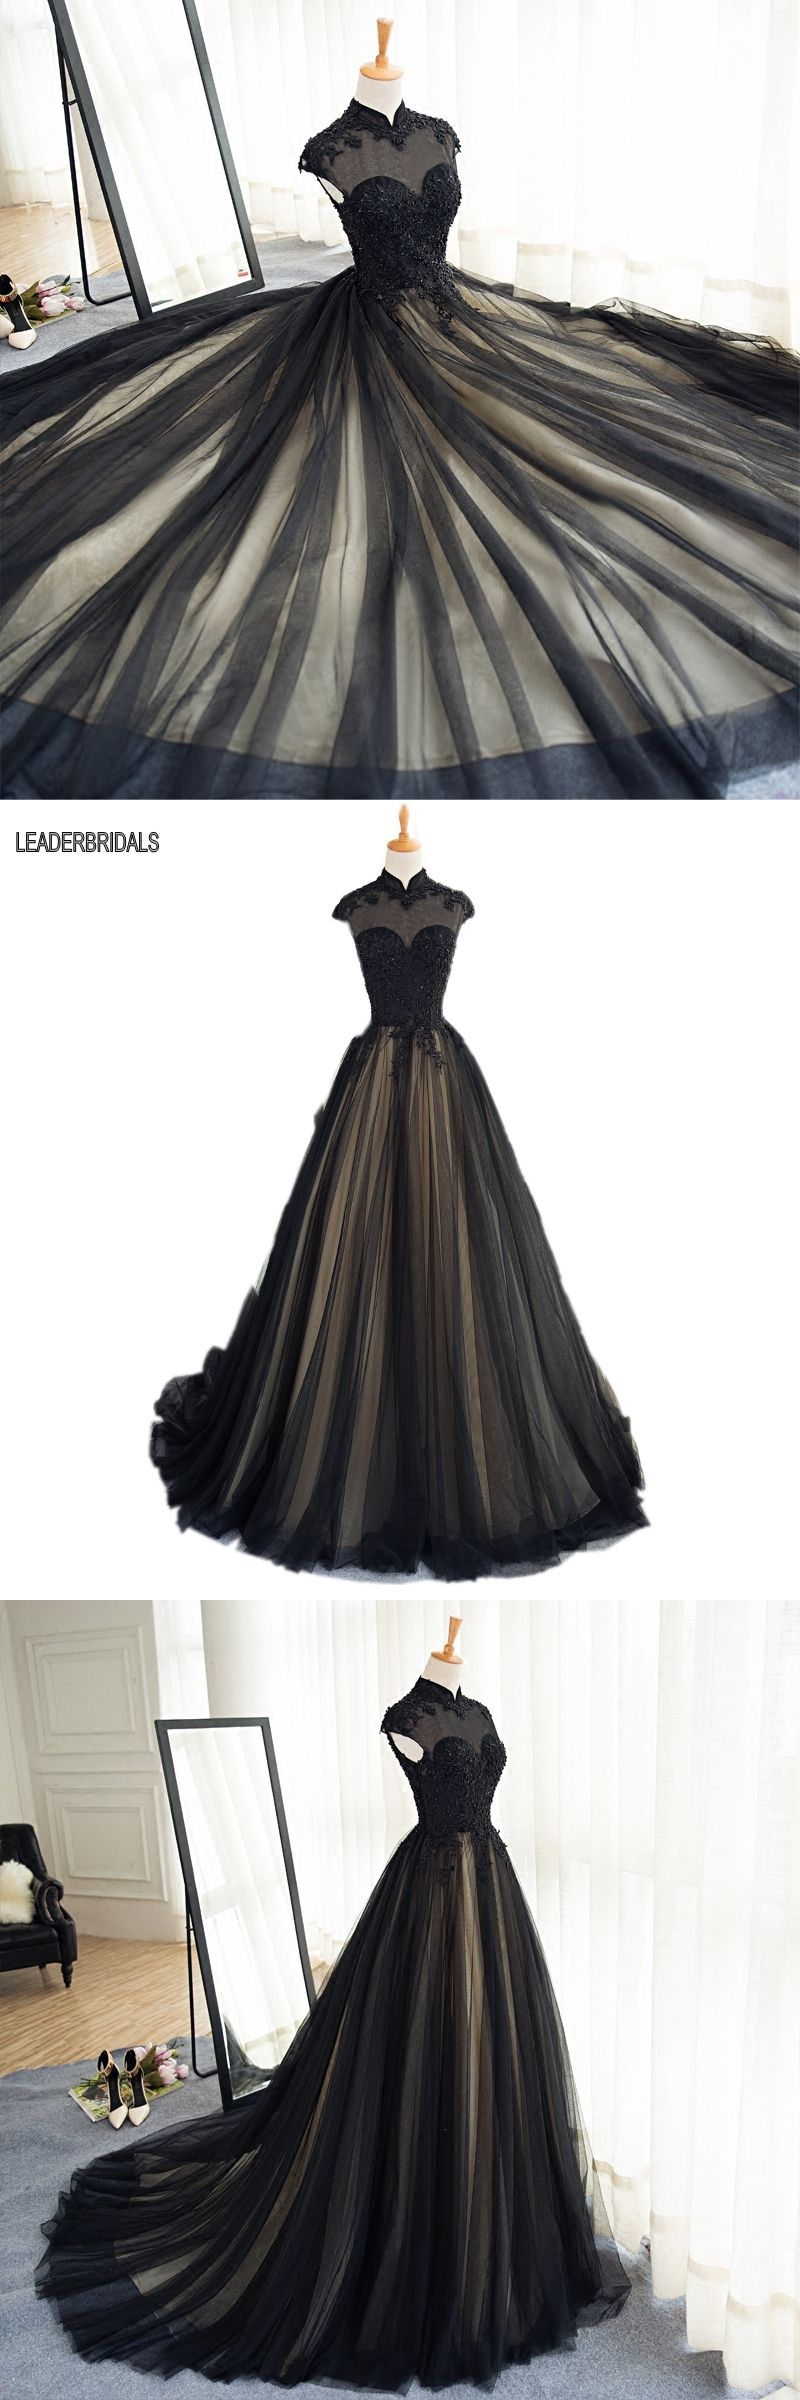 new prom dress black champagne plus size beaded choker party